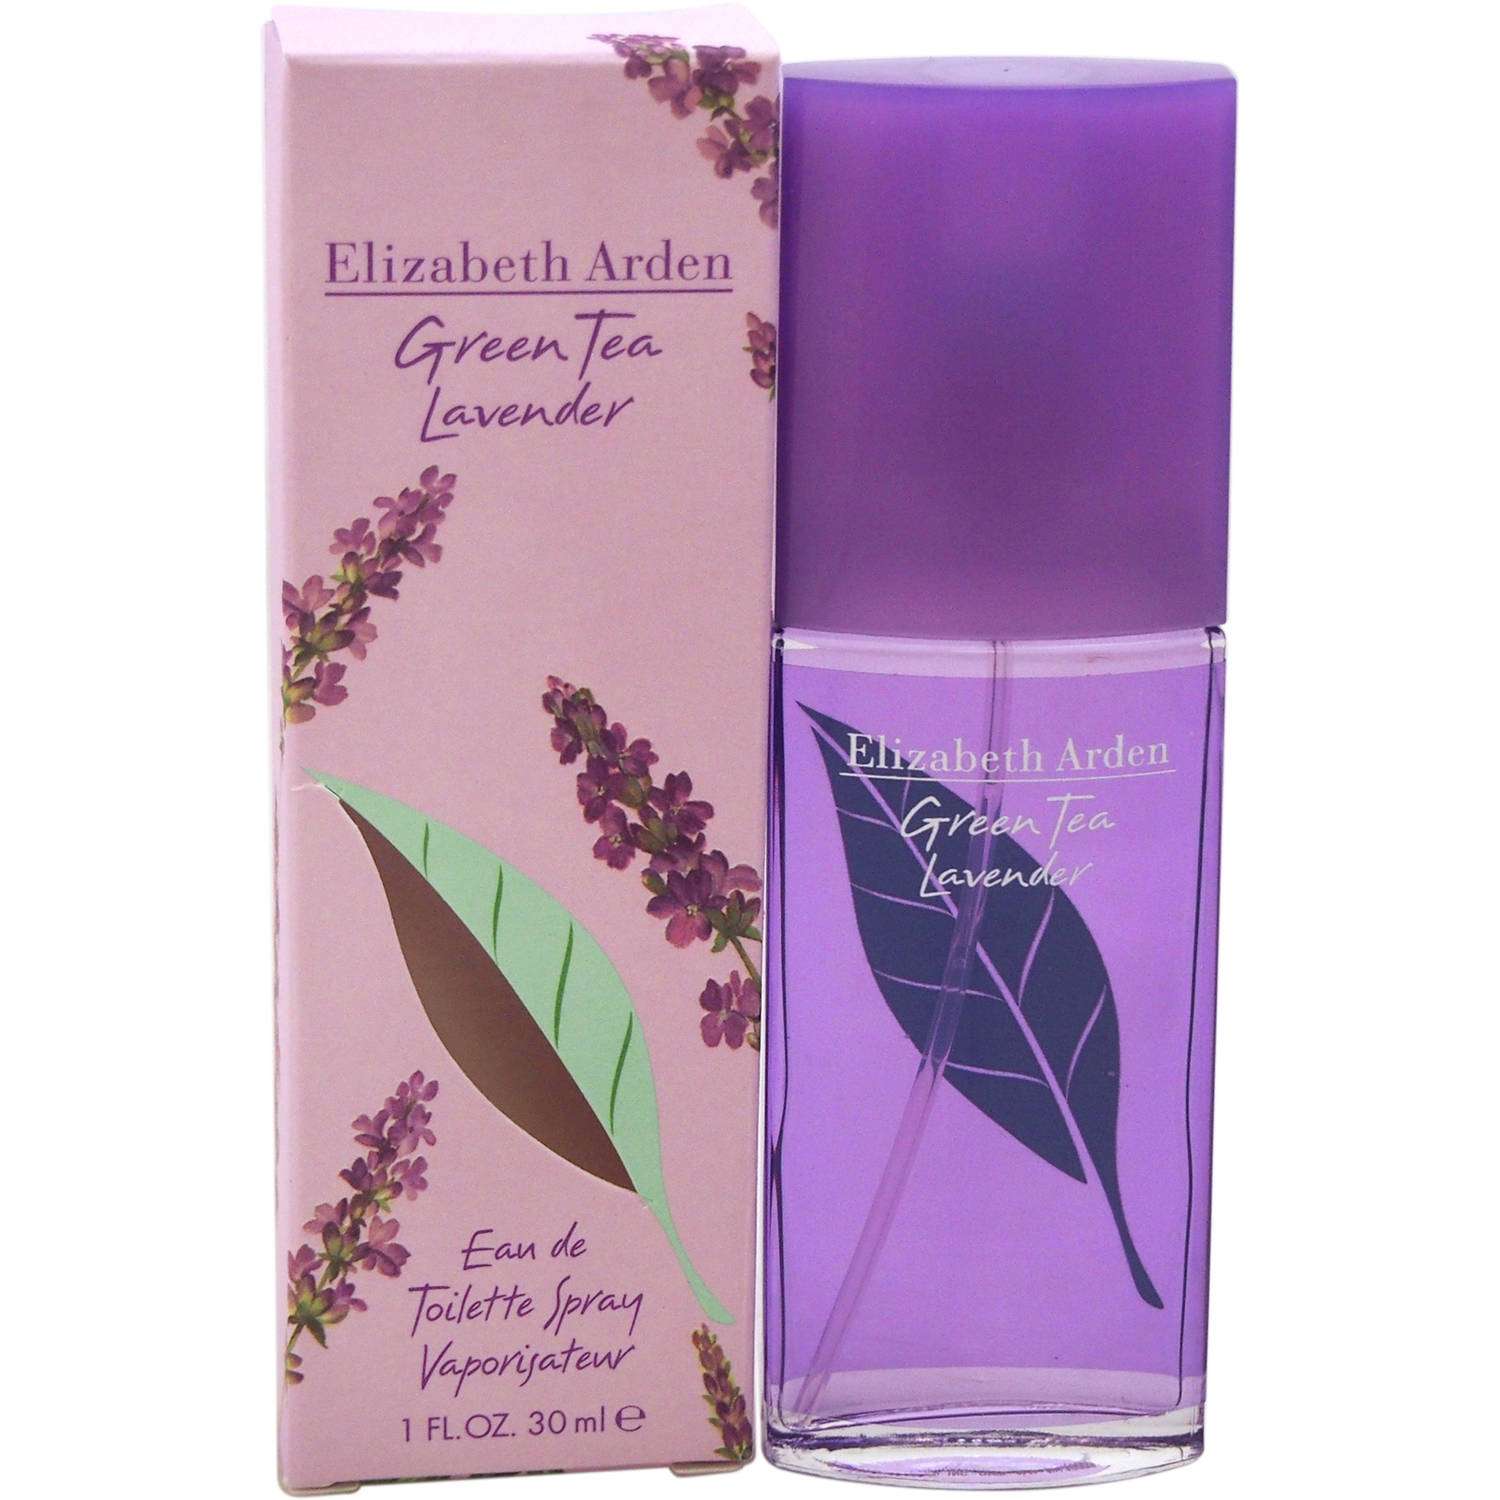 Elizabeth Arden Green Tea Lavender Eau de Toilette Spray, 1 Fl Oz